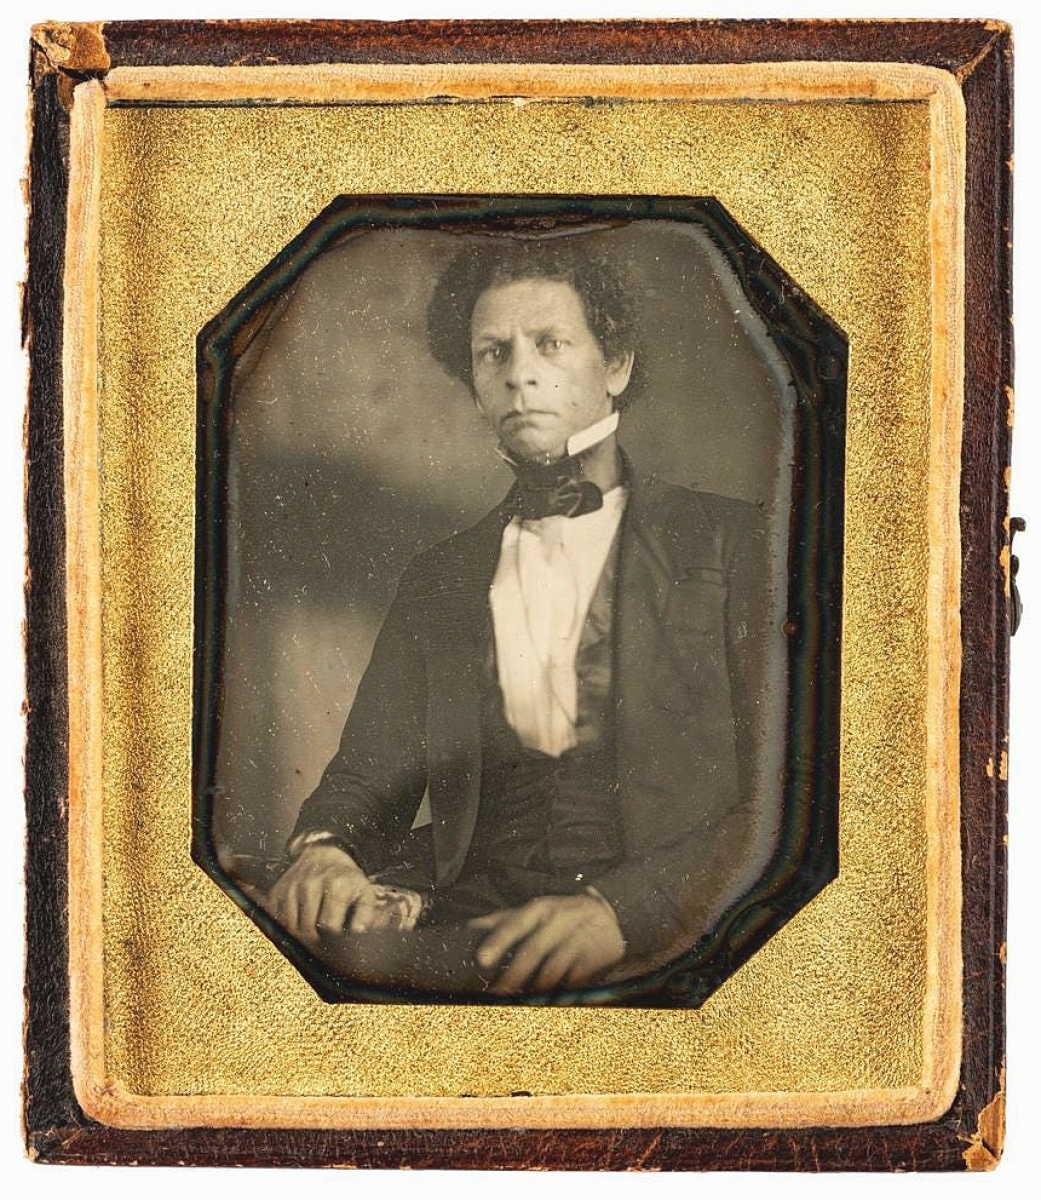 Horstman said this was likely the earliest photograph known of Joseph Jenkins Roberts (1809-1876), the first and seventh president of Liberia. Born free in the United States, Roberts departed for Liberia where he gained status as a merchant before entering the political realm. The sixth plate daguerreotype sold for $13,750.